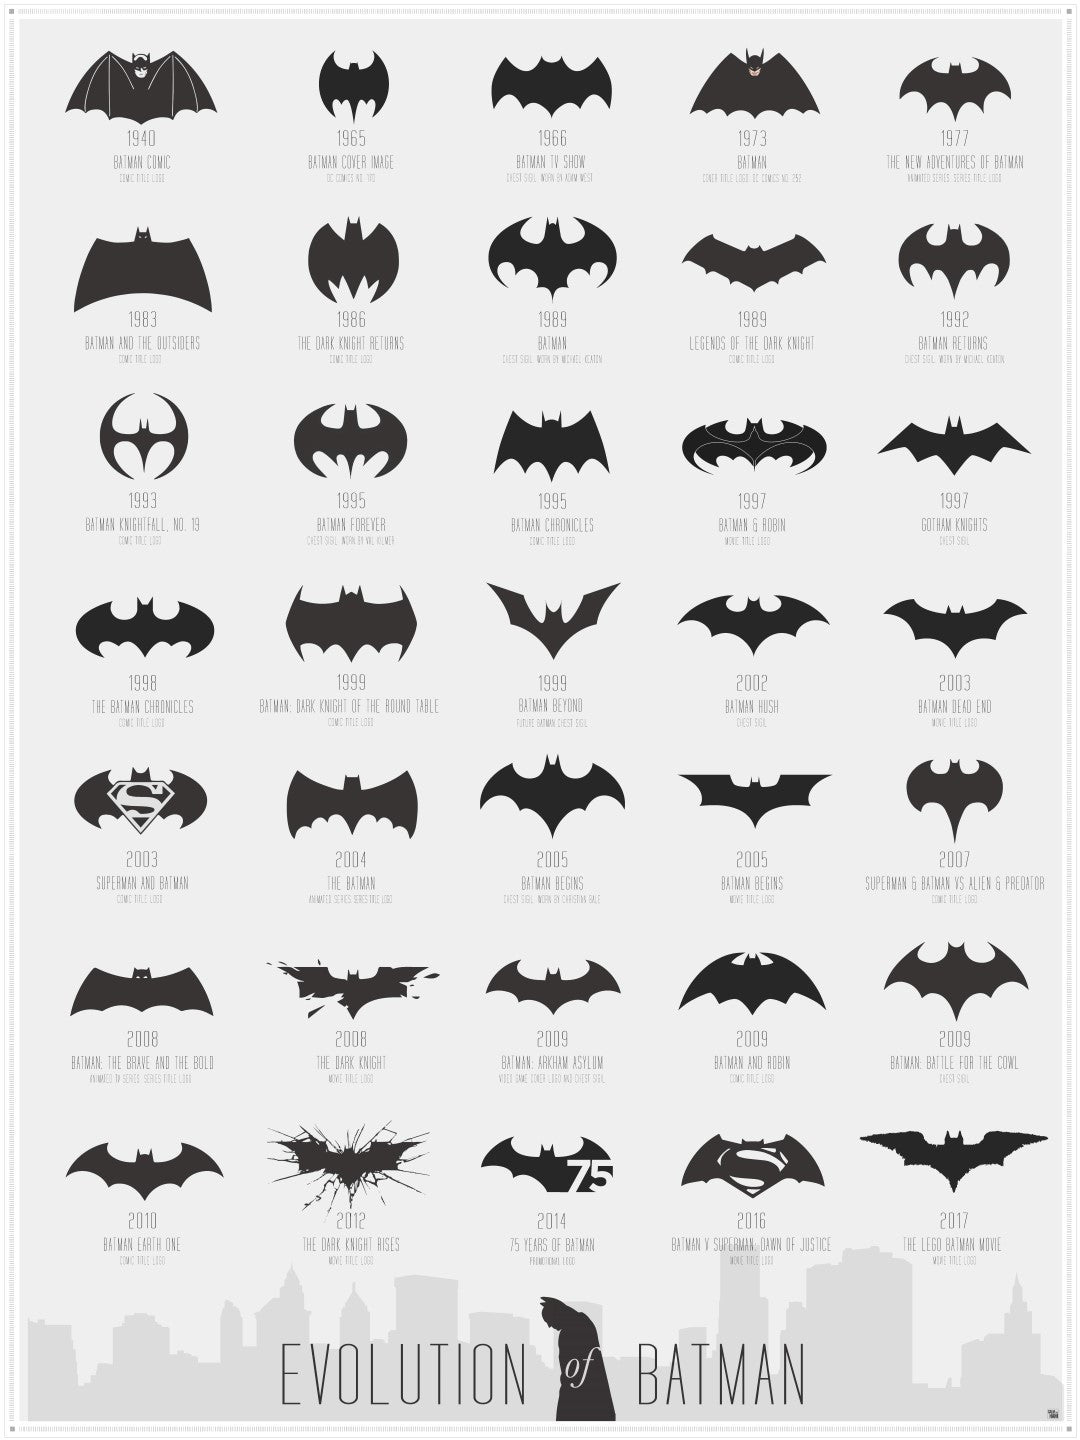 Evolution of the Bat